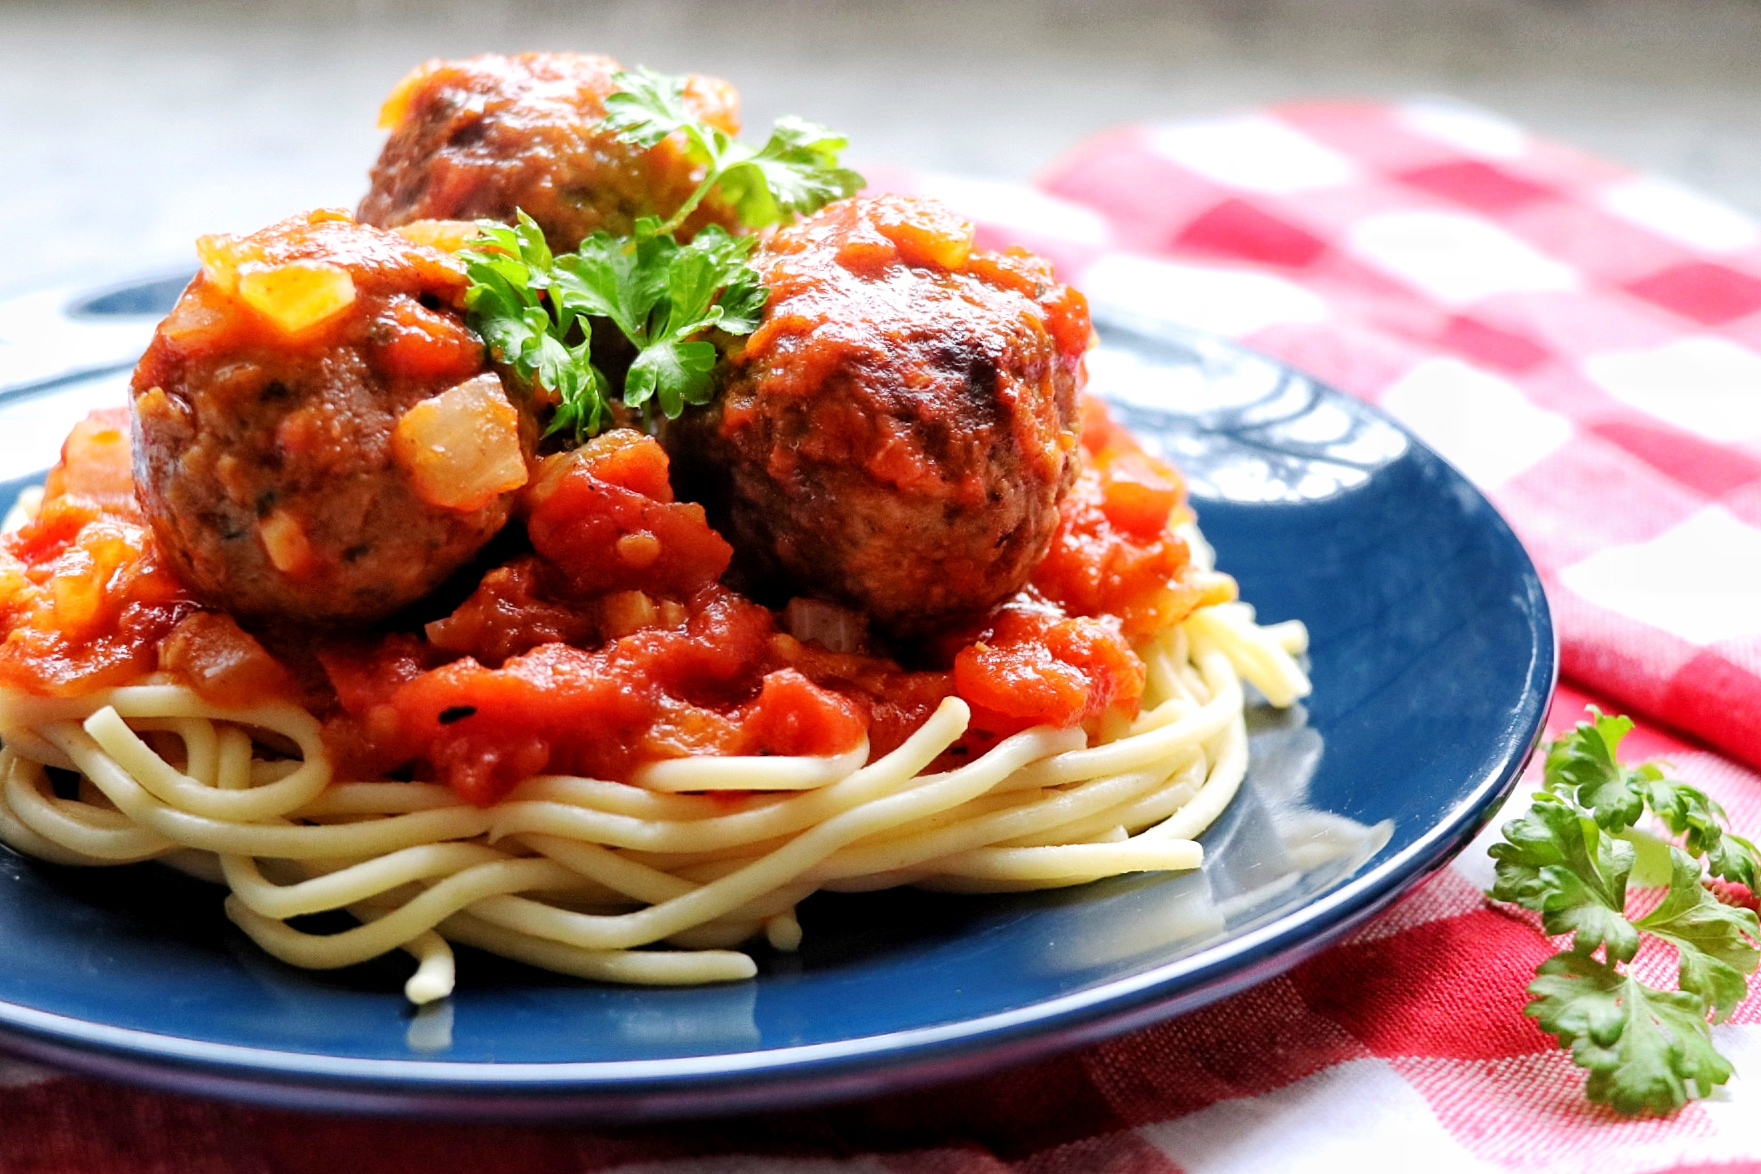 These plant-based meatballs are made with Beyond Meat's® Beyond Beef® and served with a slow-simmered tomato sauce for a hearty, satisfying vegan meal.